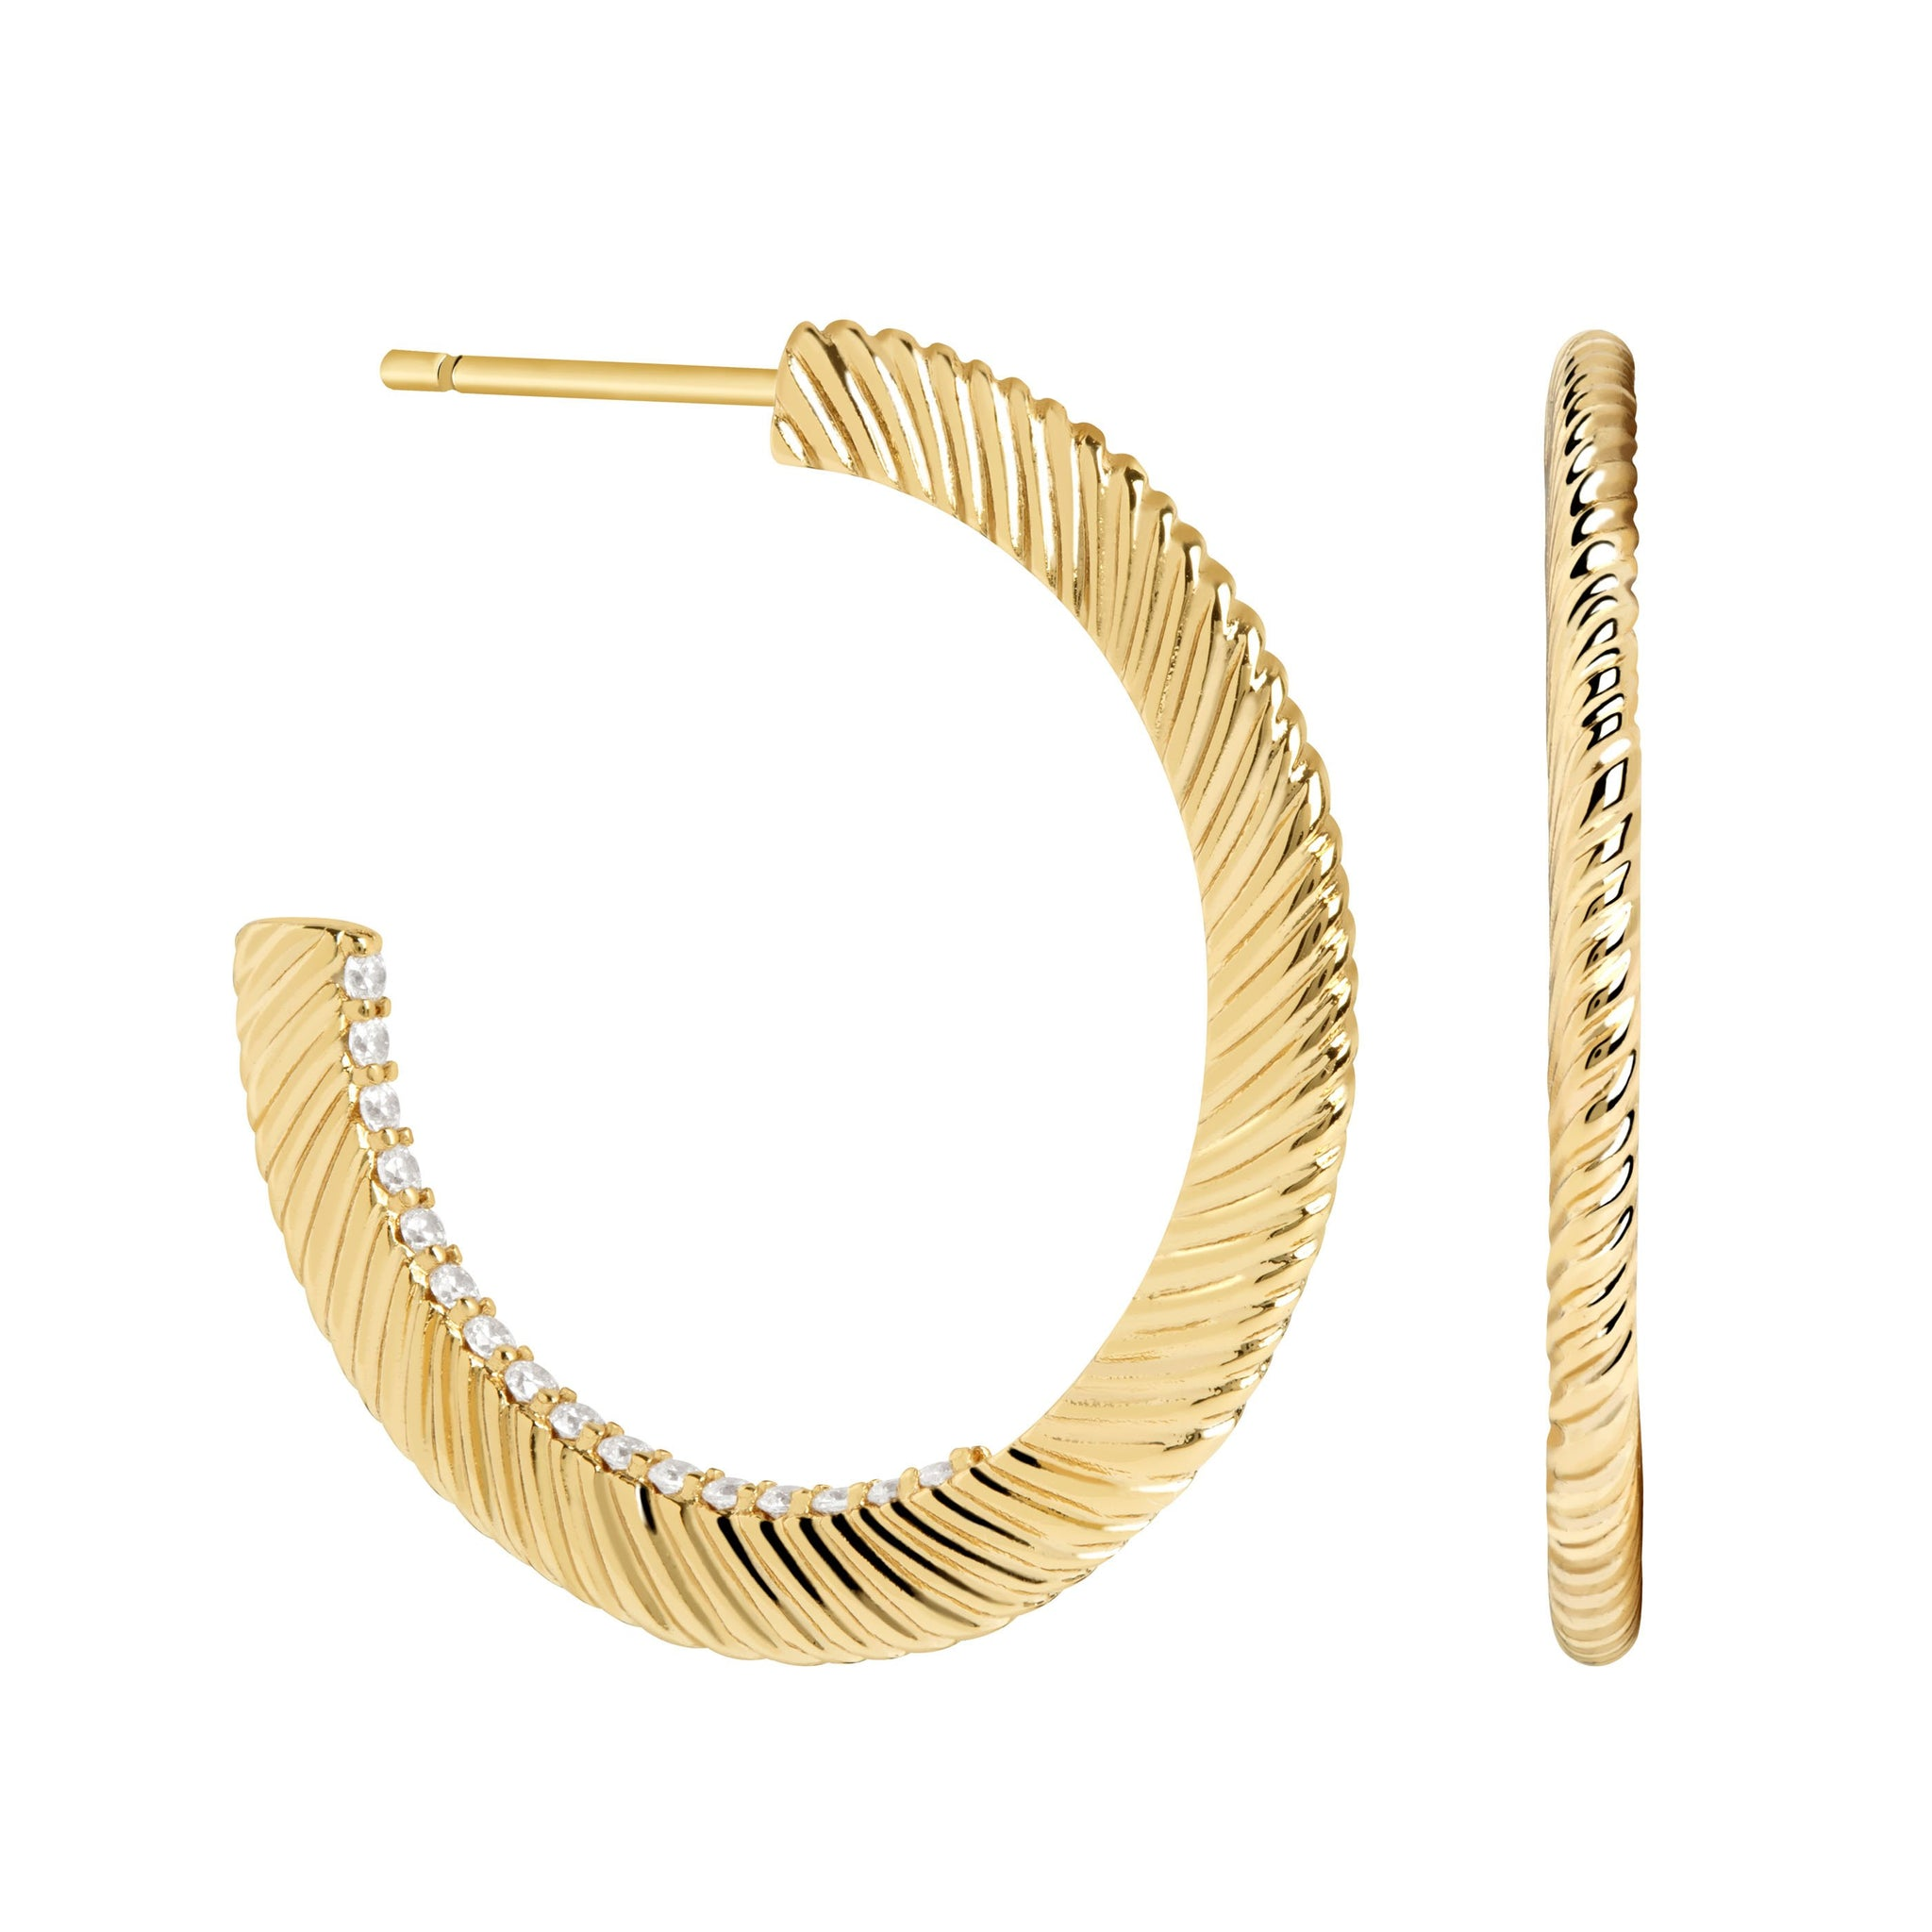 Etched Crystal Hoops in Gold